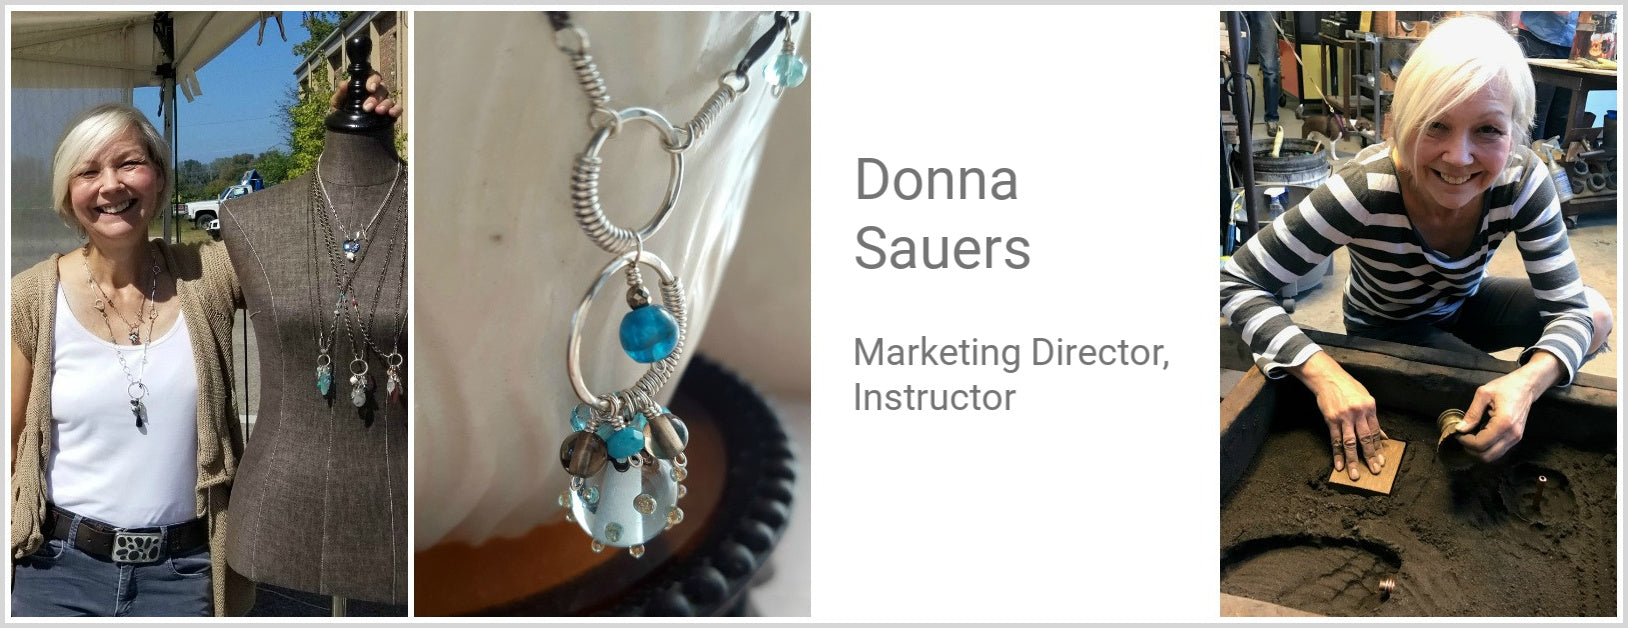 Donna Sauers, Marketing Director